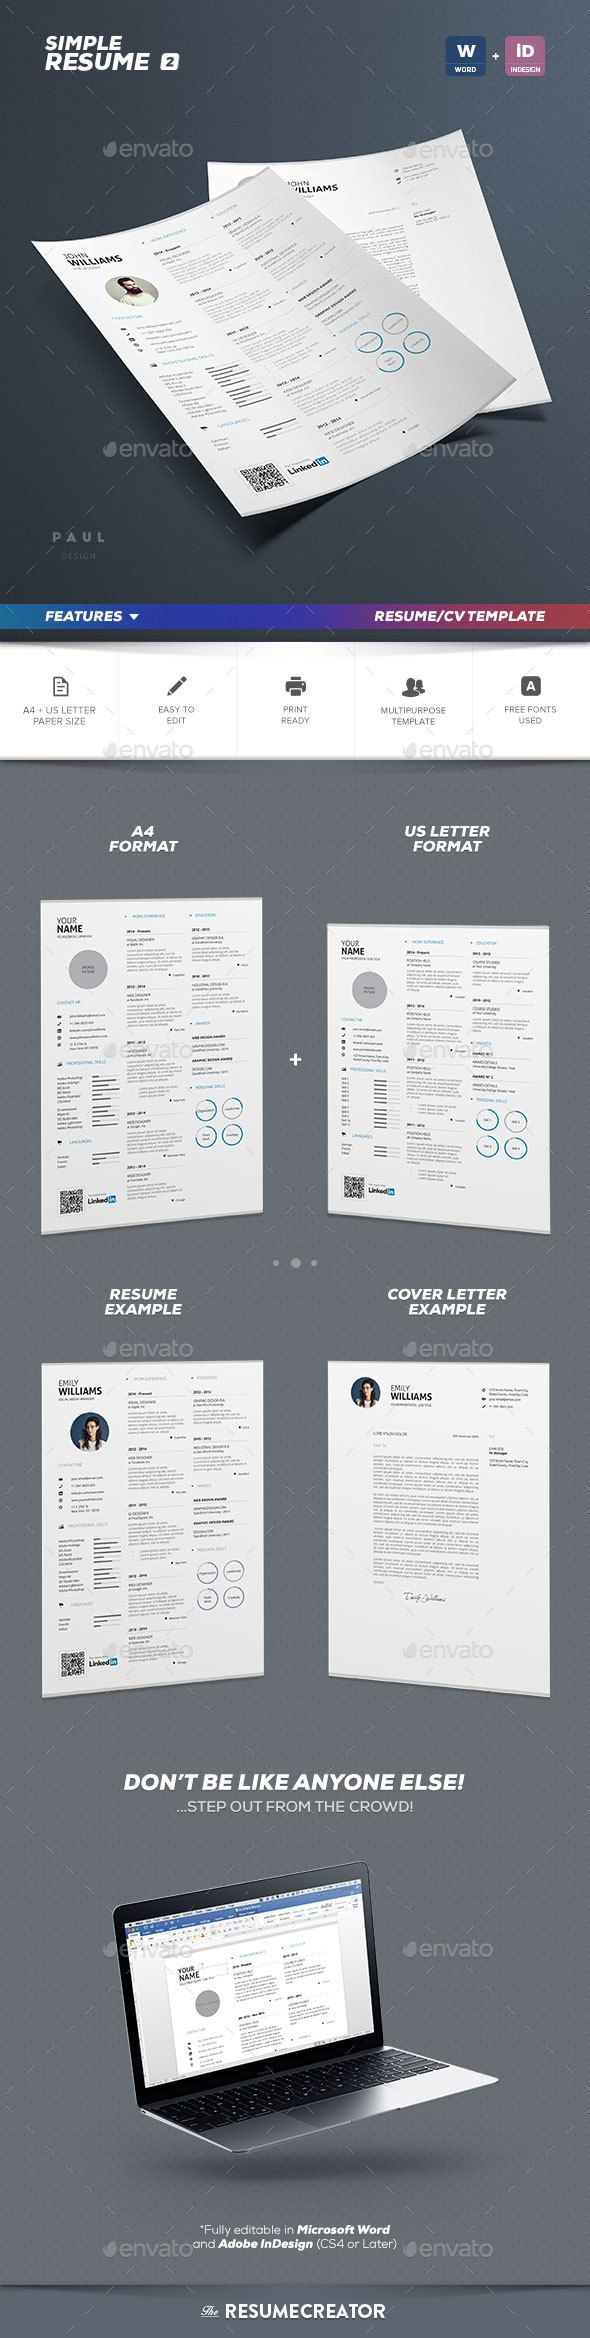 Simple Resume Vol. 2 - Resumes Stationery Feautures: Single Page Resume Template Indesign and Ms Word Version Indesign CS4 (or Later) Compatible Matching Cover Letter Included 300 Dpi – Print Ready CMYK Color Scheme Free Fonts Used A4 ISO 210×297 mm + Bleed Us Letter 8.5×11 in + Bleed Free Fonts Used: Aller: Download Open Sans: Download Package Content: Single Page Resume Template (Docx, Indd & Idml) Cover Letter Template (Docx, Indd & Idml) Help Guide (Pdf)